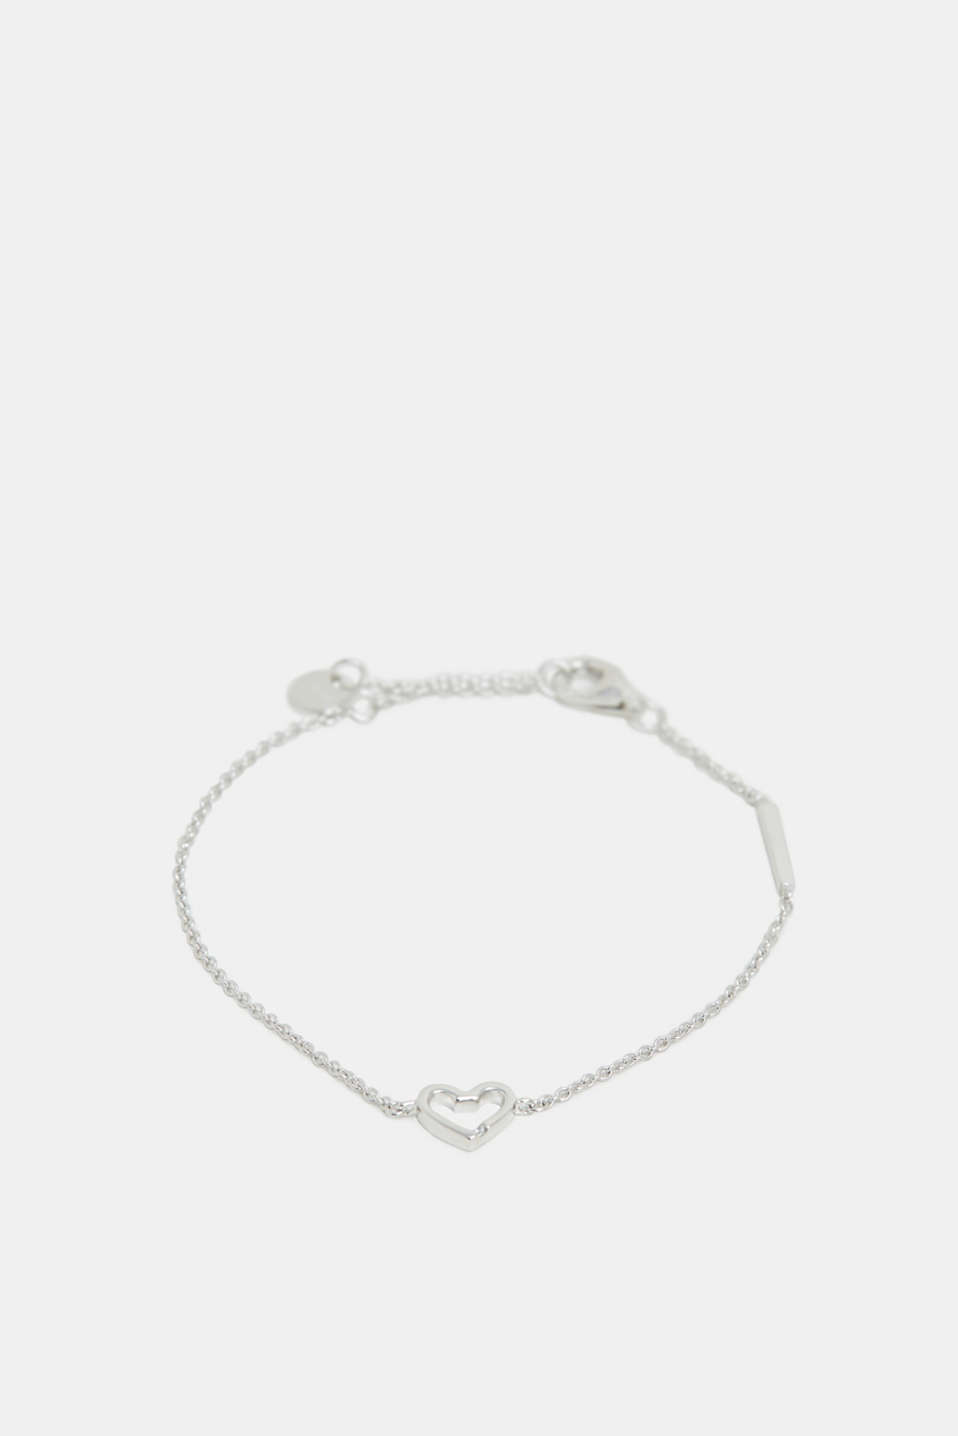 Esprit - Bracelet with a heart pendant, sterling silver